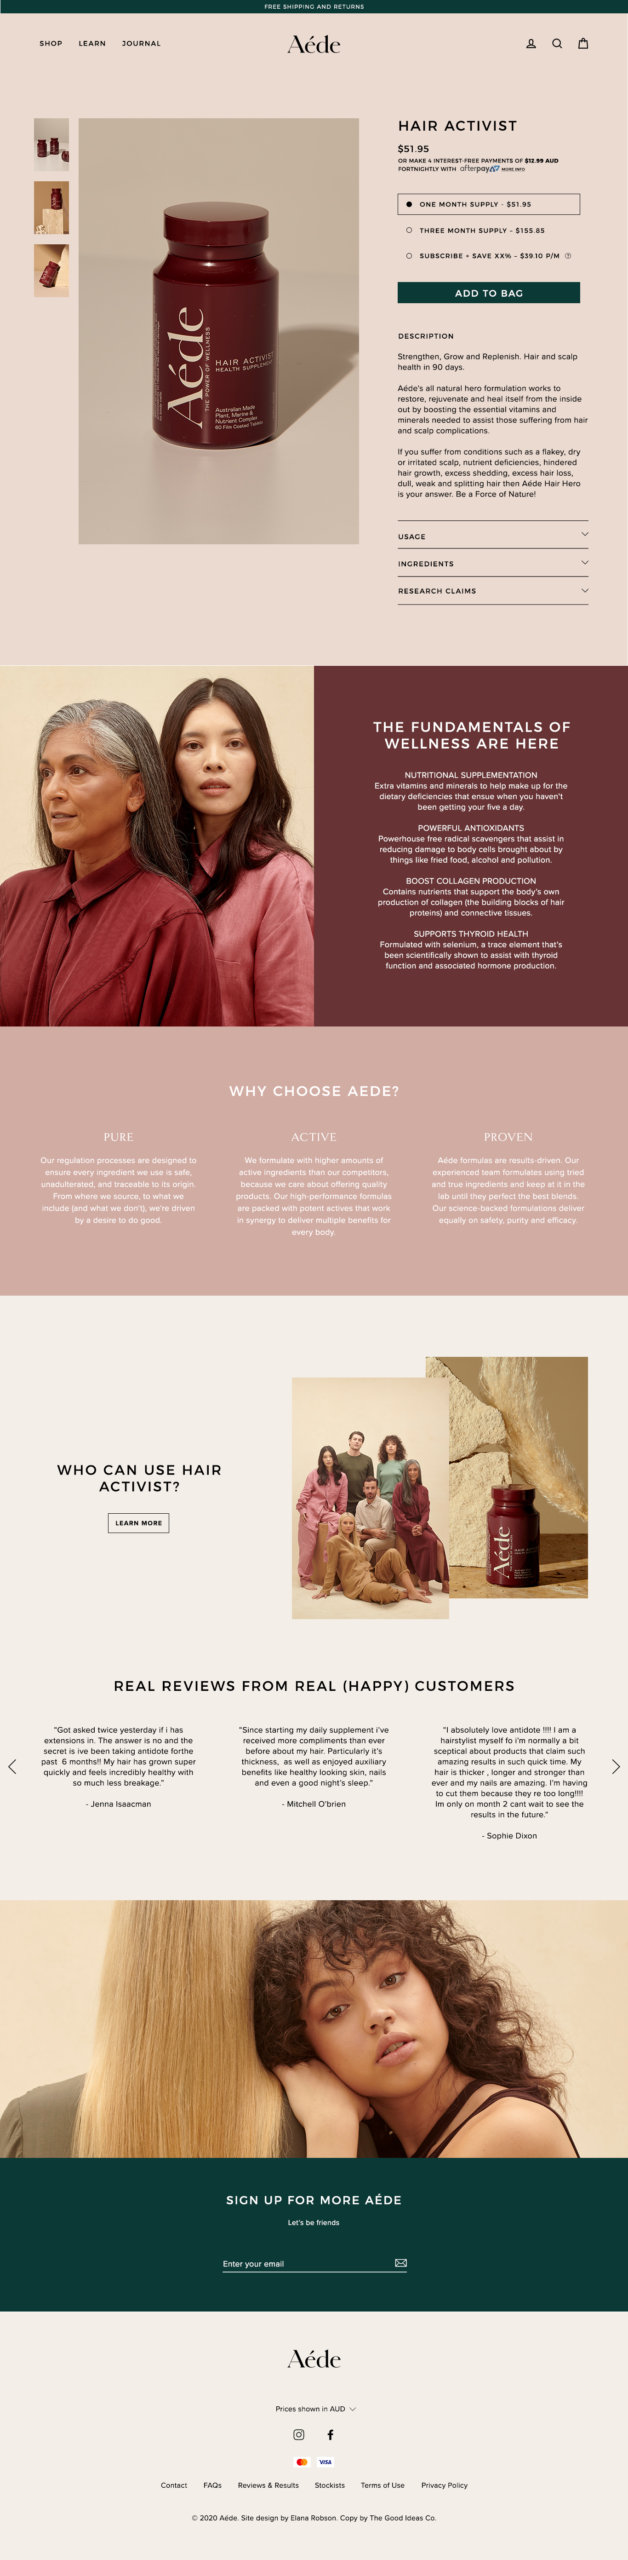 Aede-Website-Product-Page